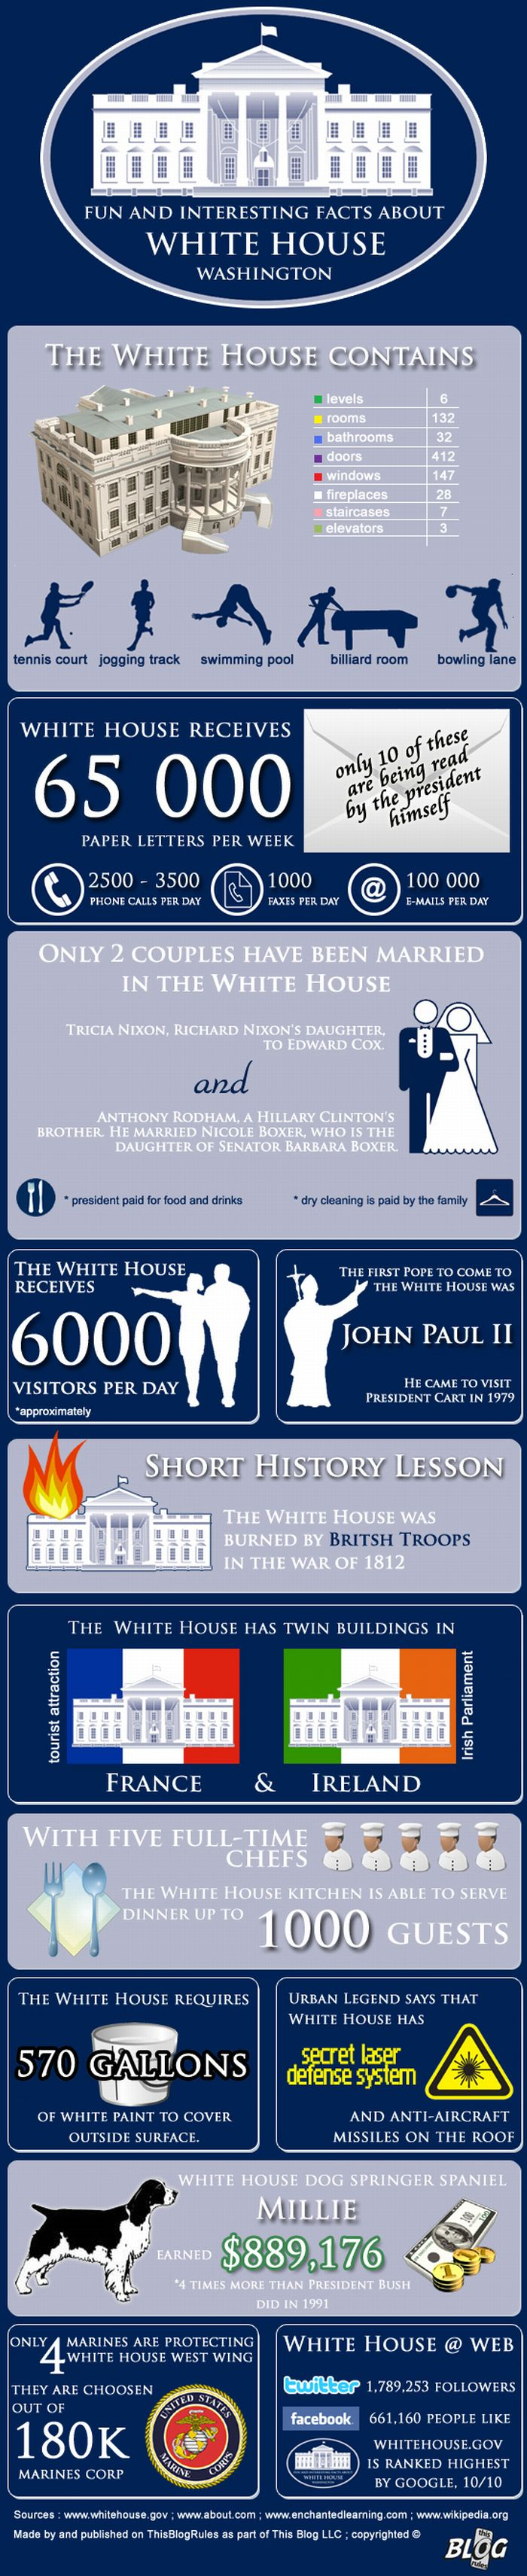 Facts About White House (Infographic)